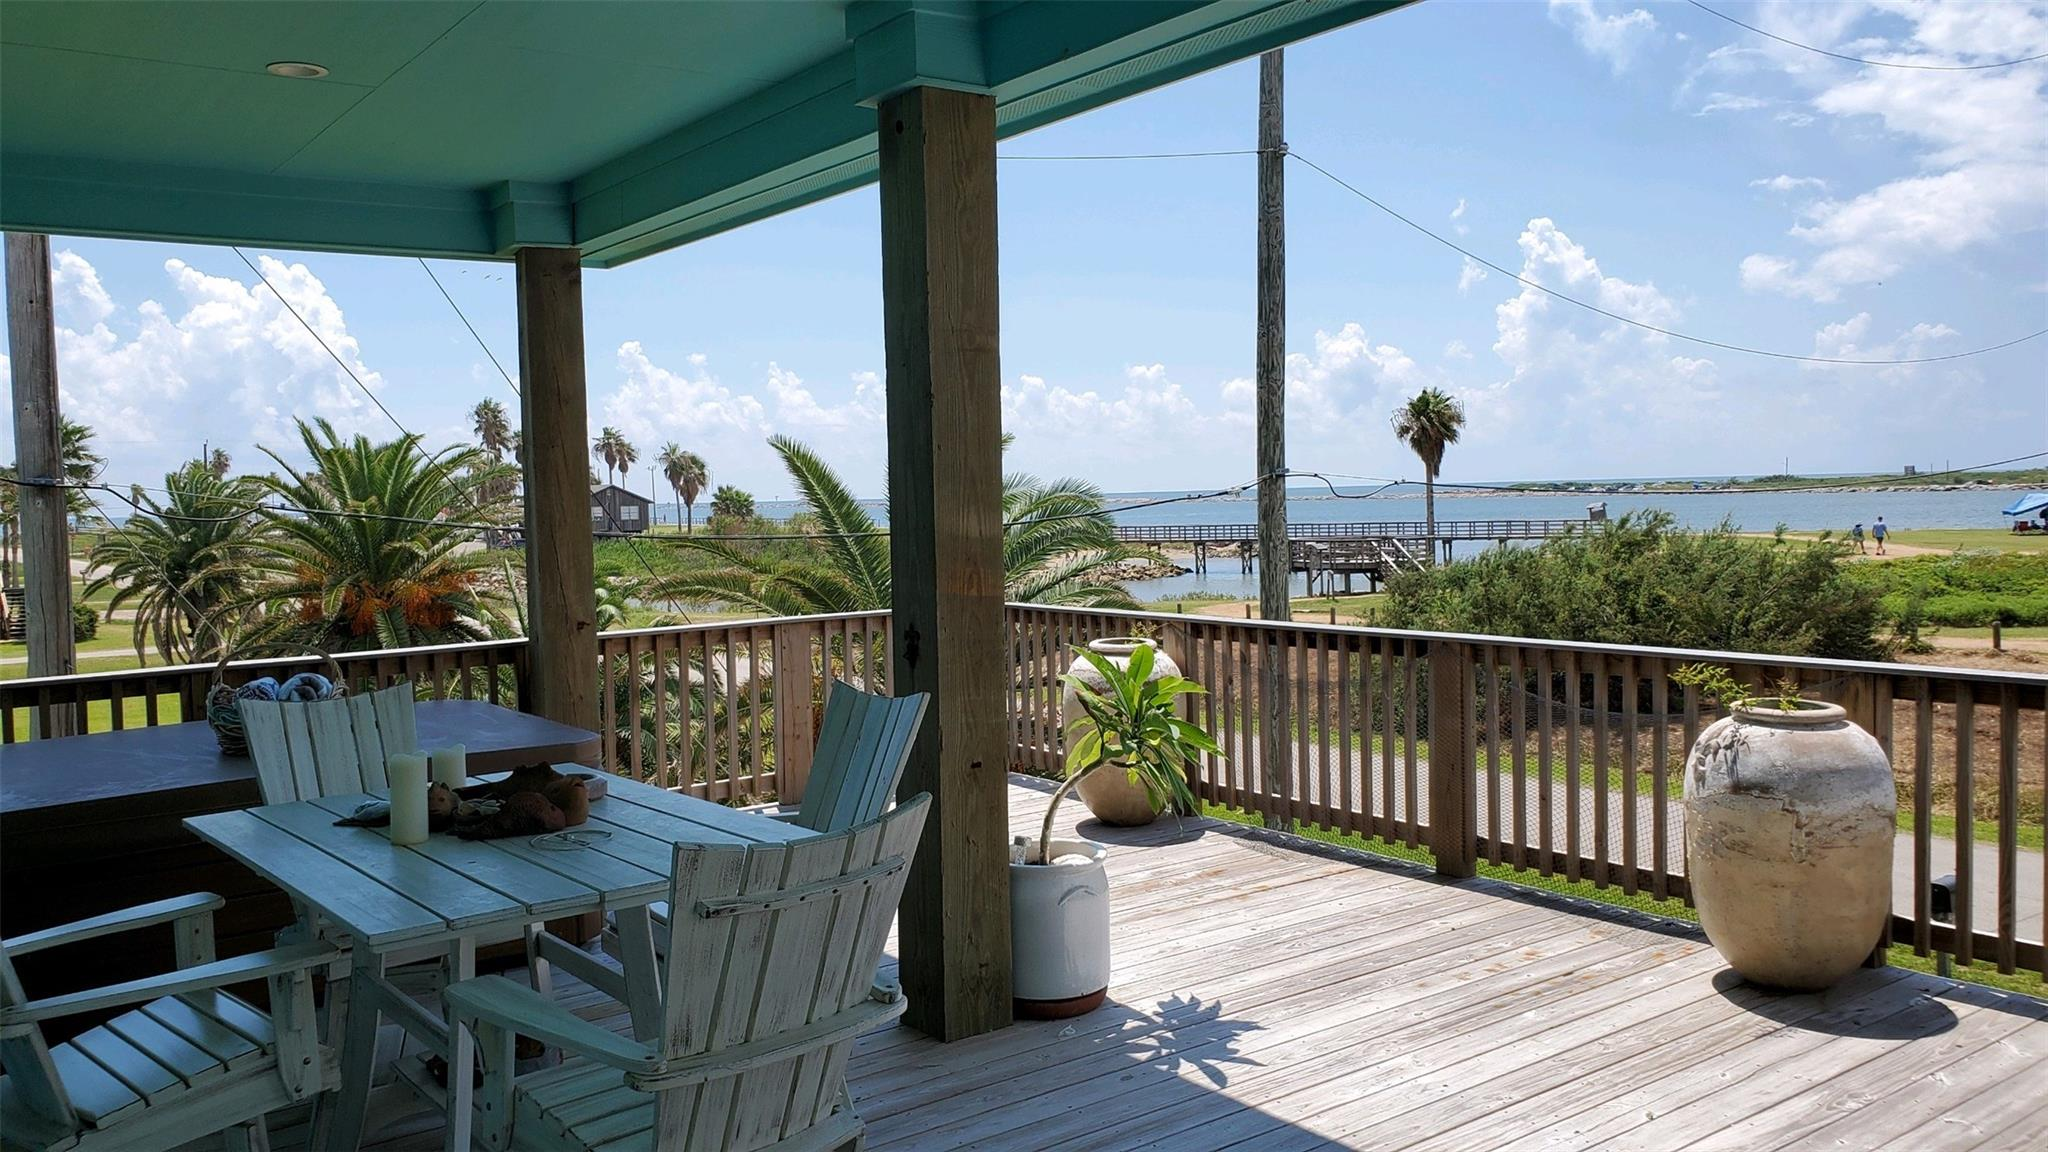 334 Parkview Road Property Photo - Surfside Beach, TX real estate listing